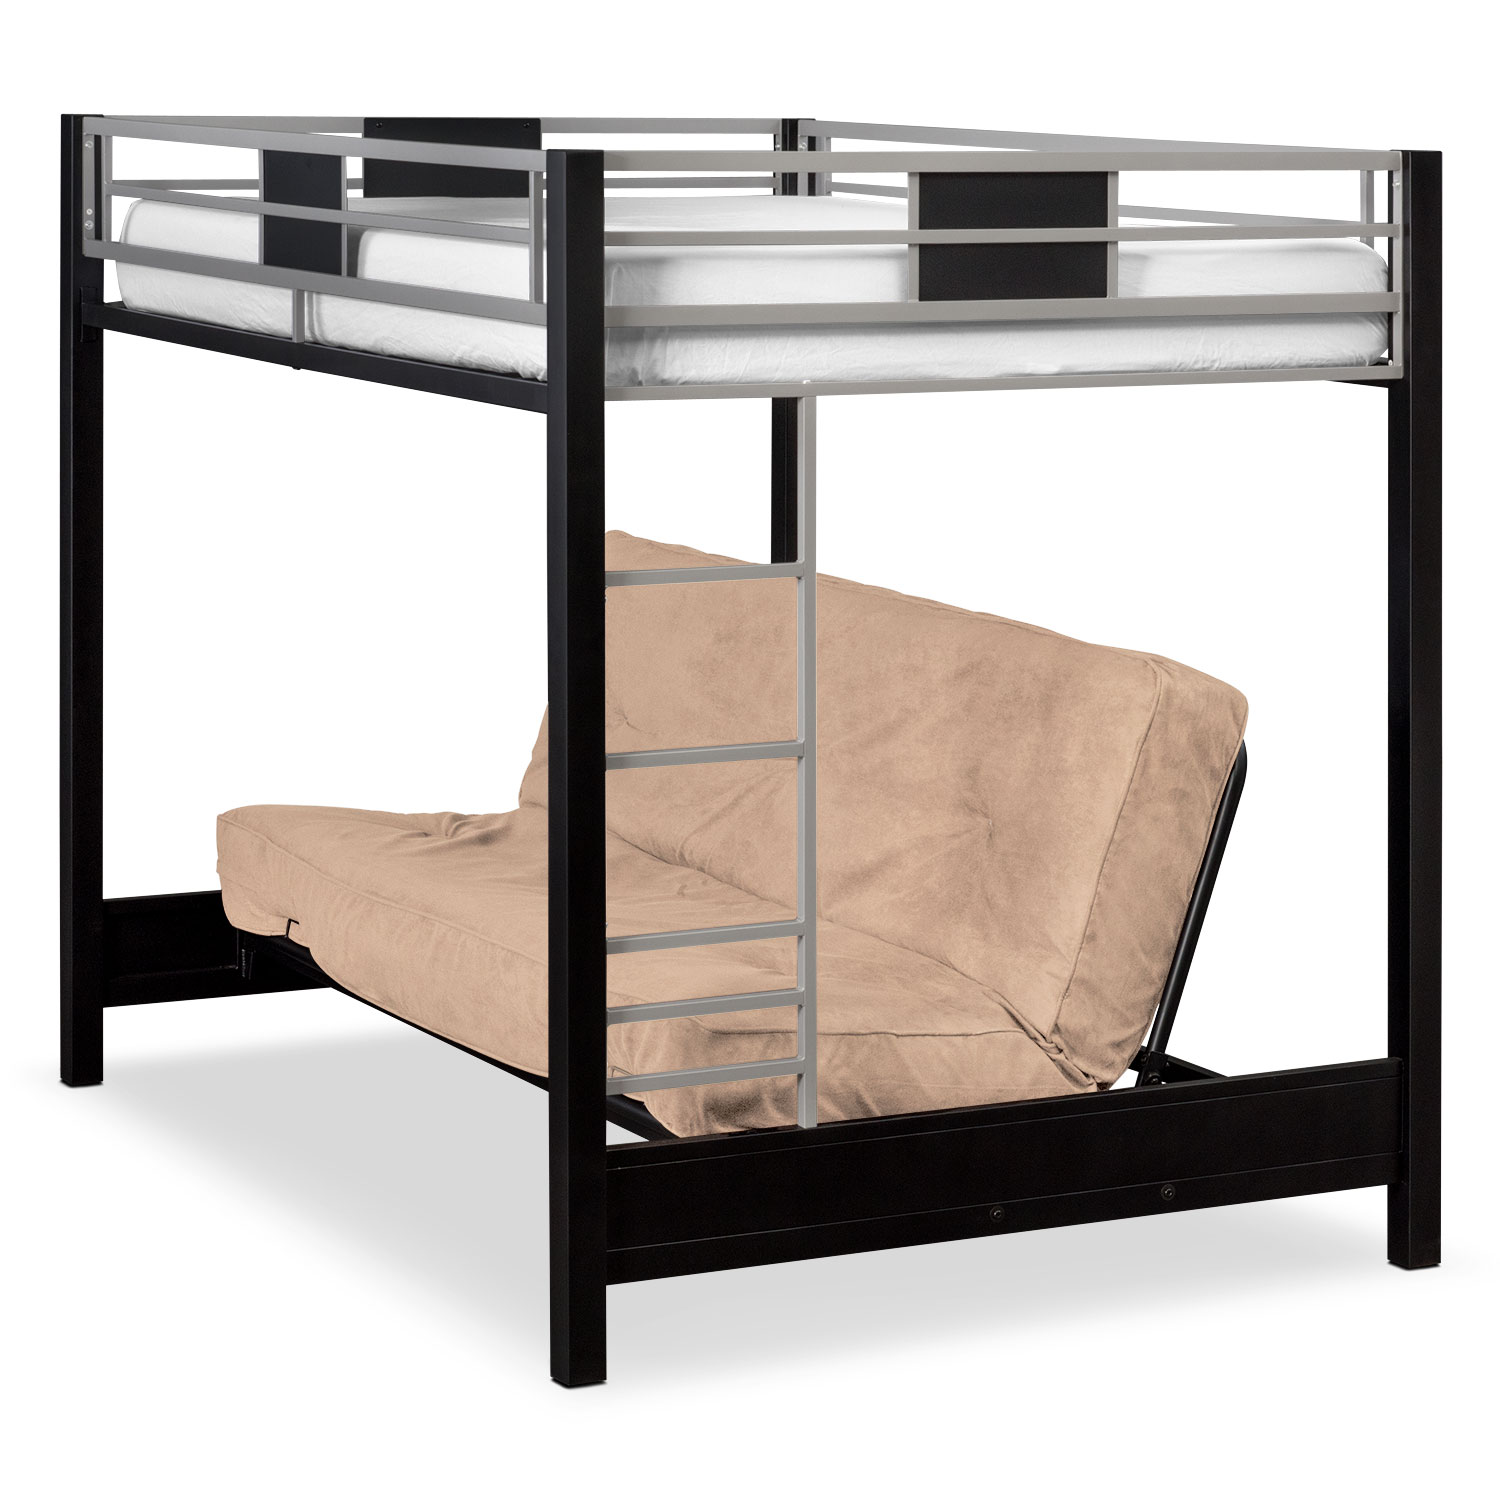 Bunk Beds Value City Value City Furniture